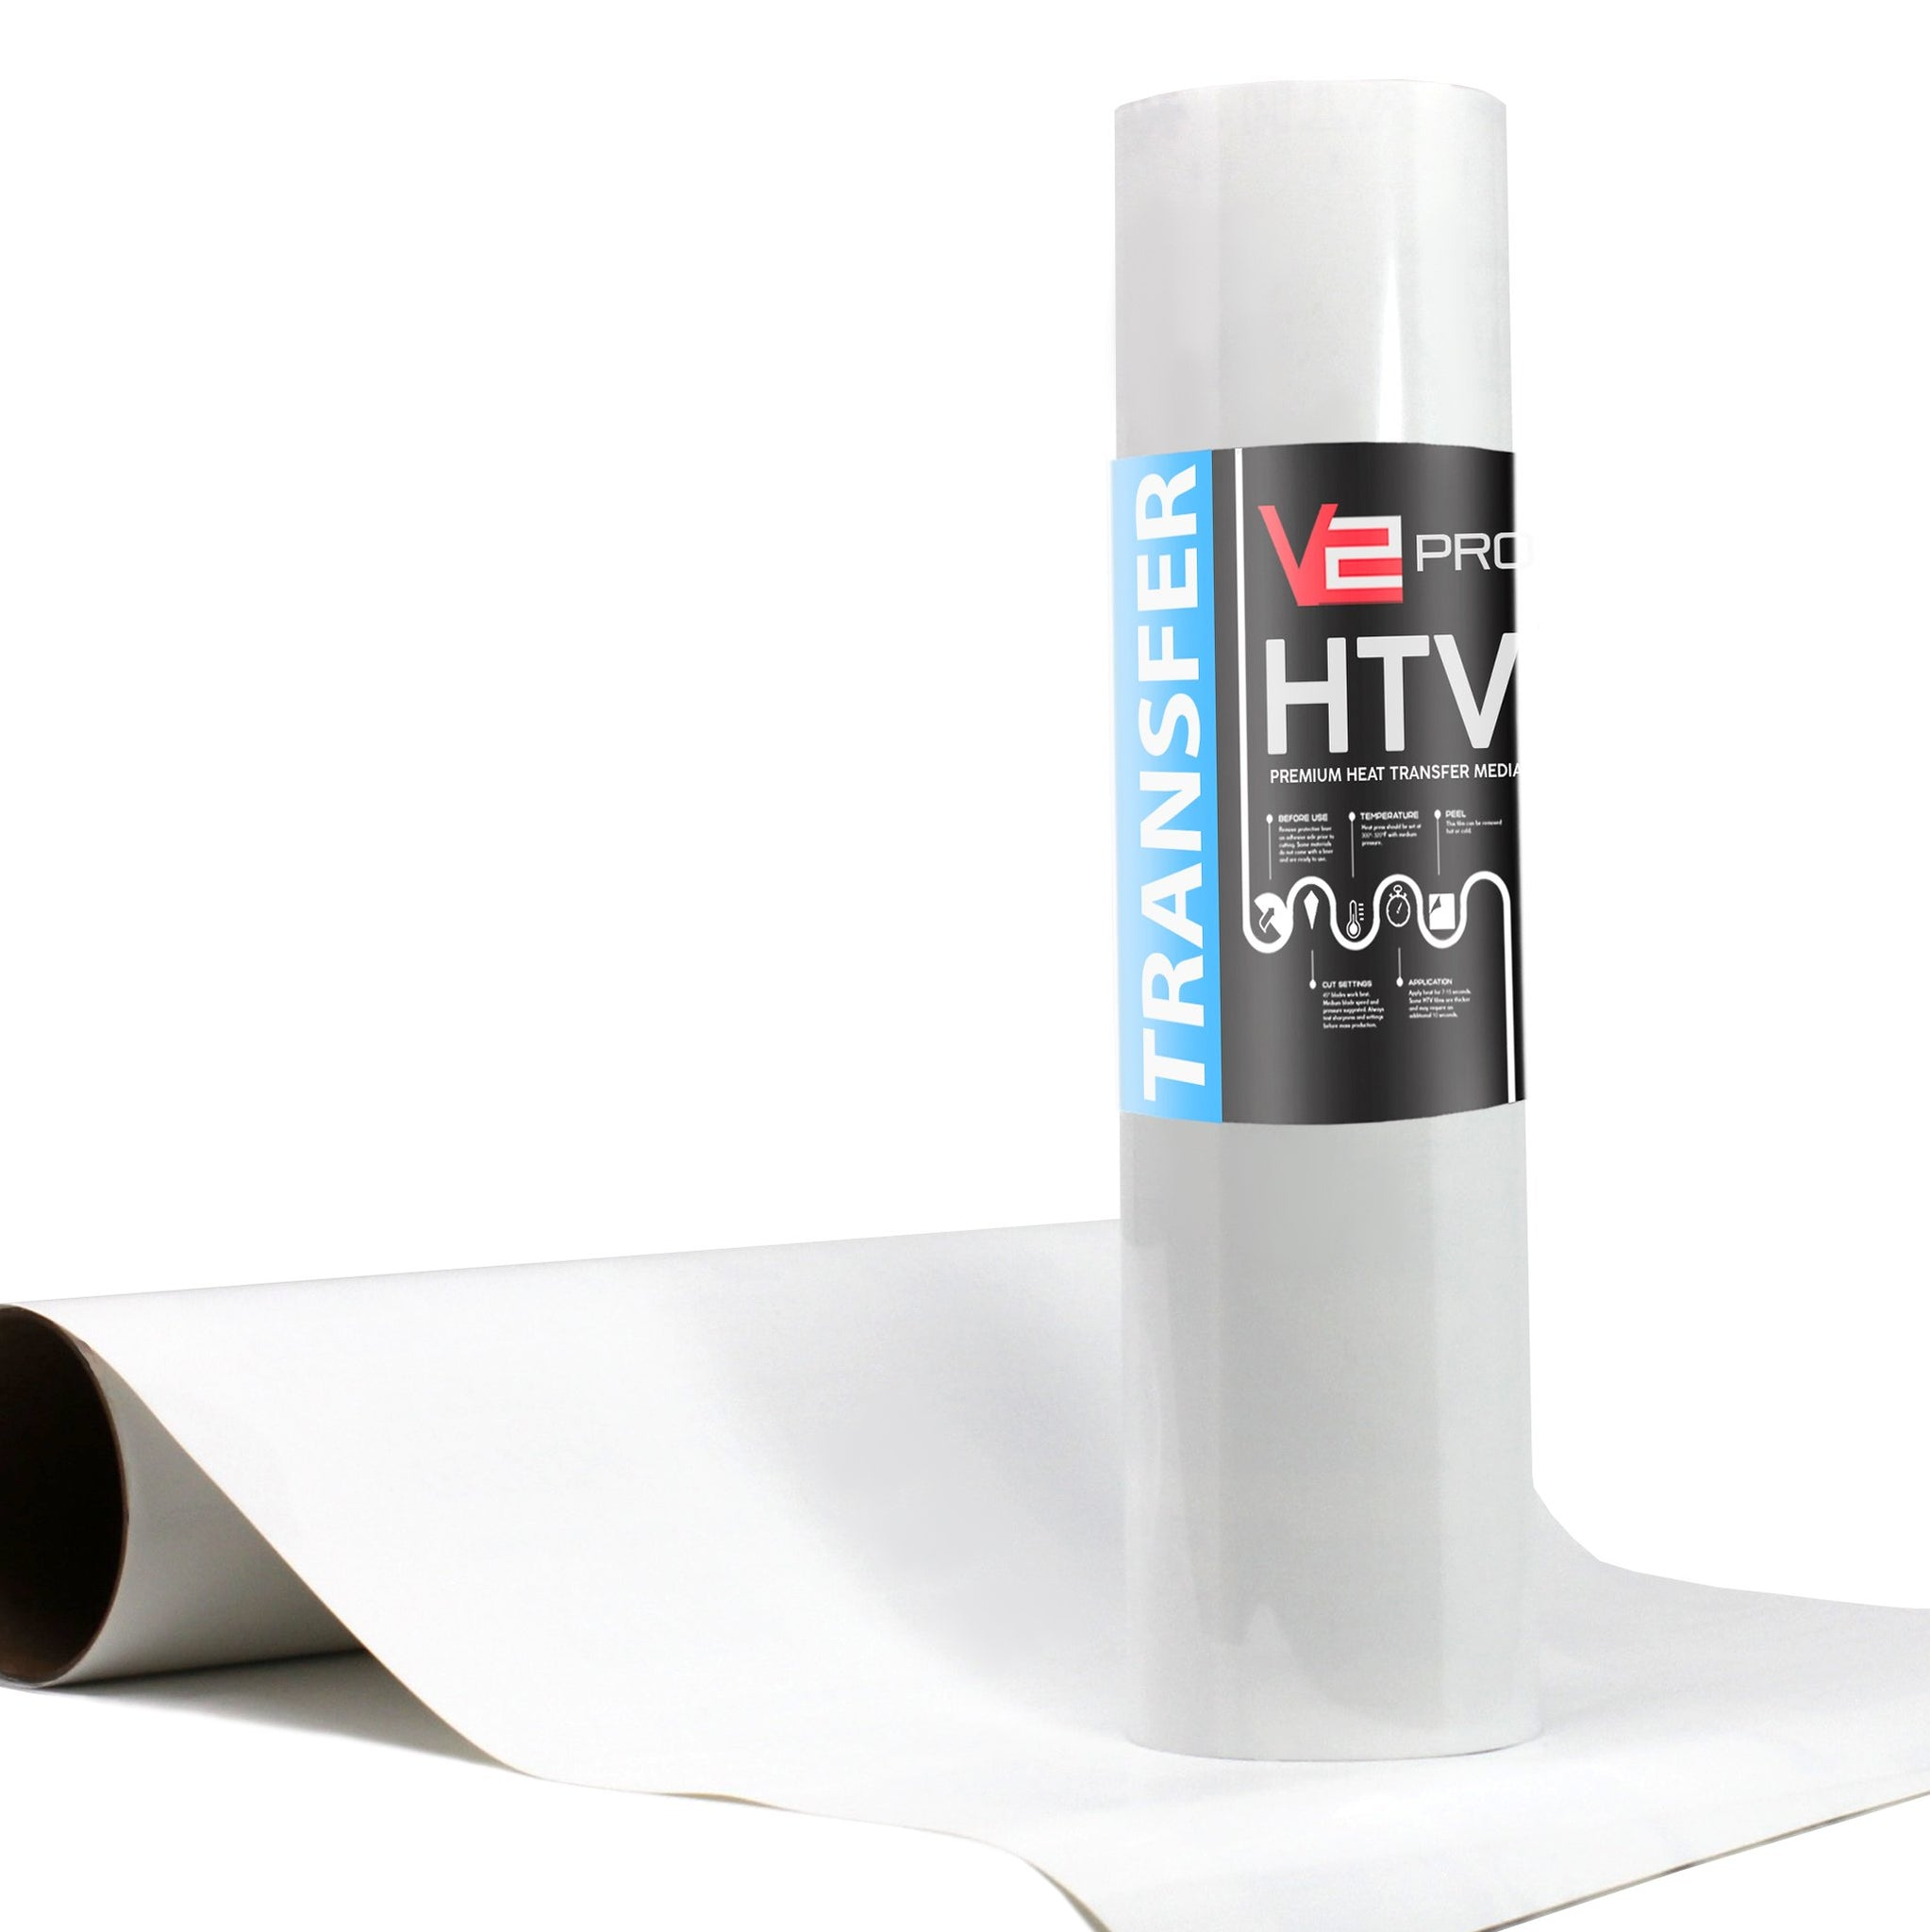 V2 Pro White Heat Transfer Vinyl Film thumbnail